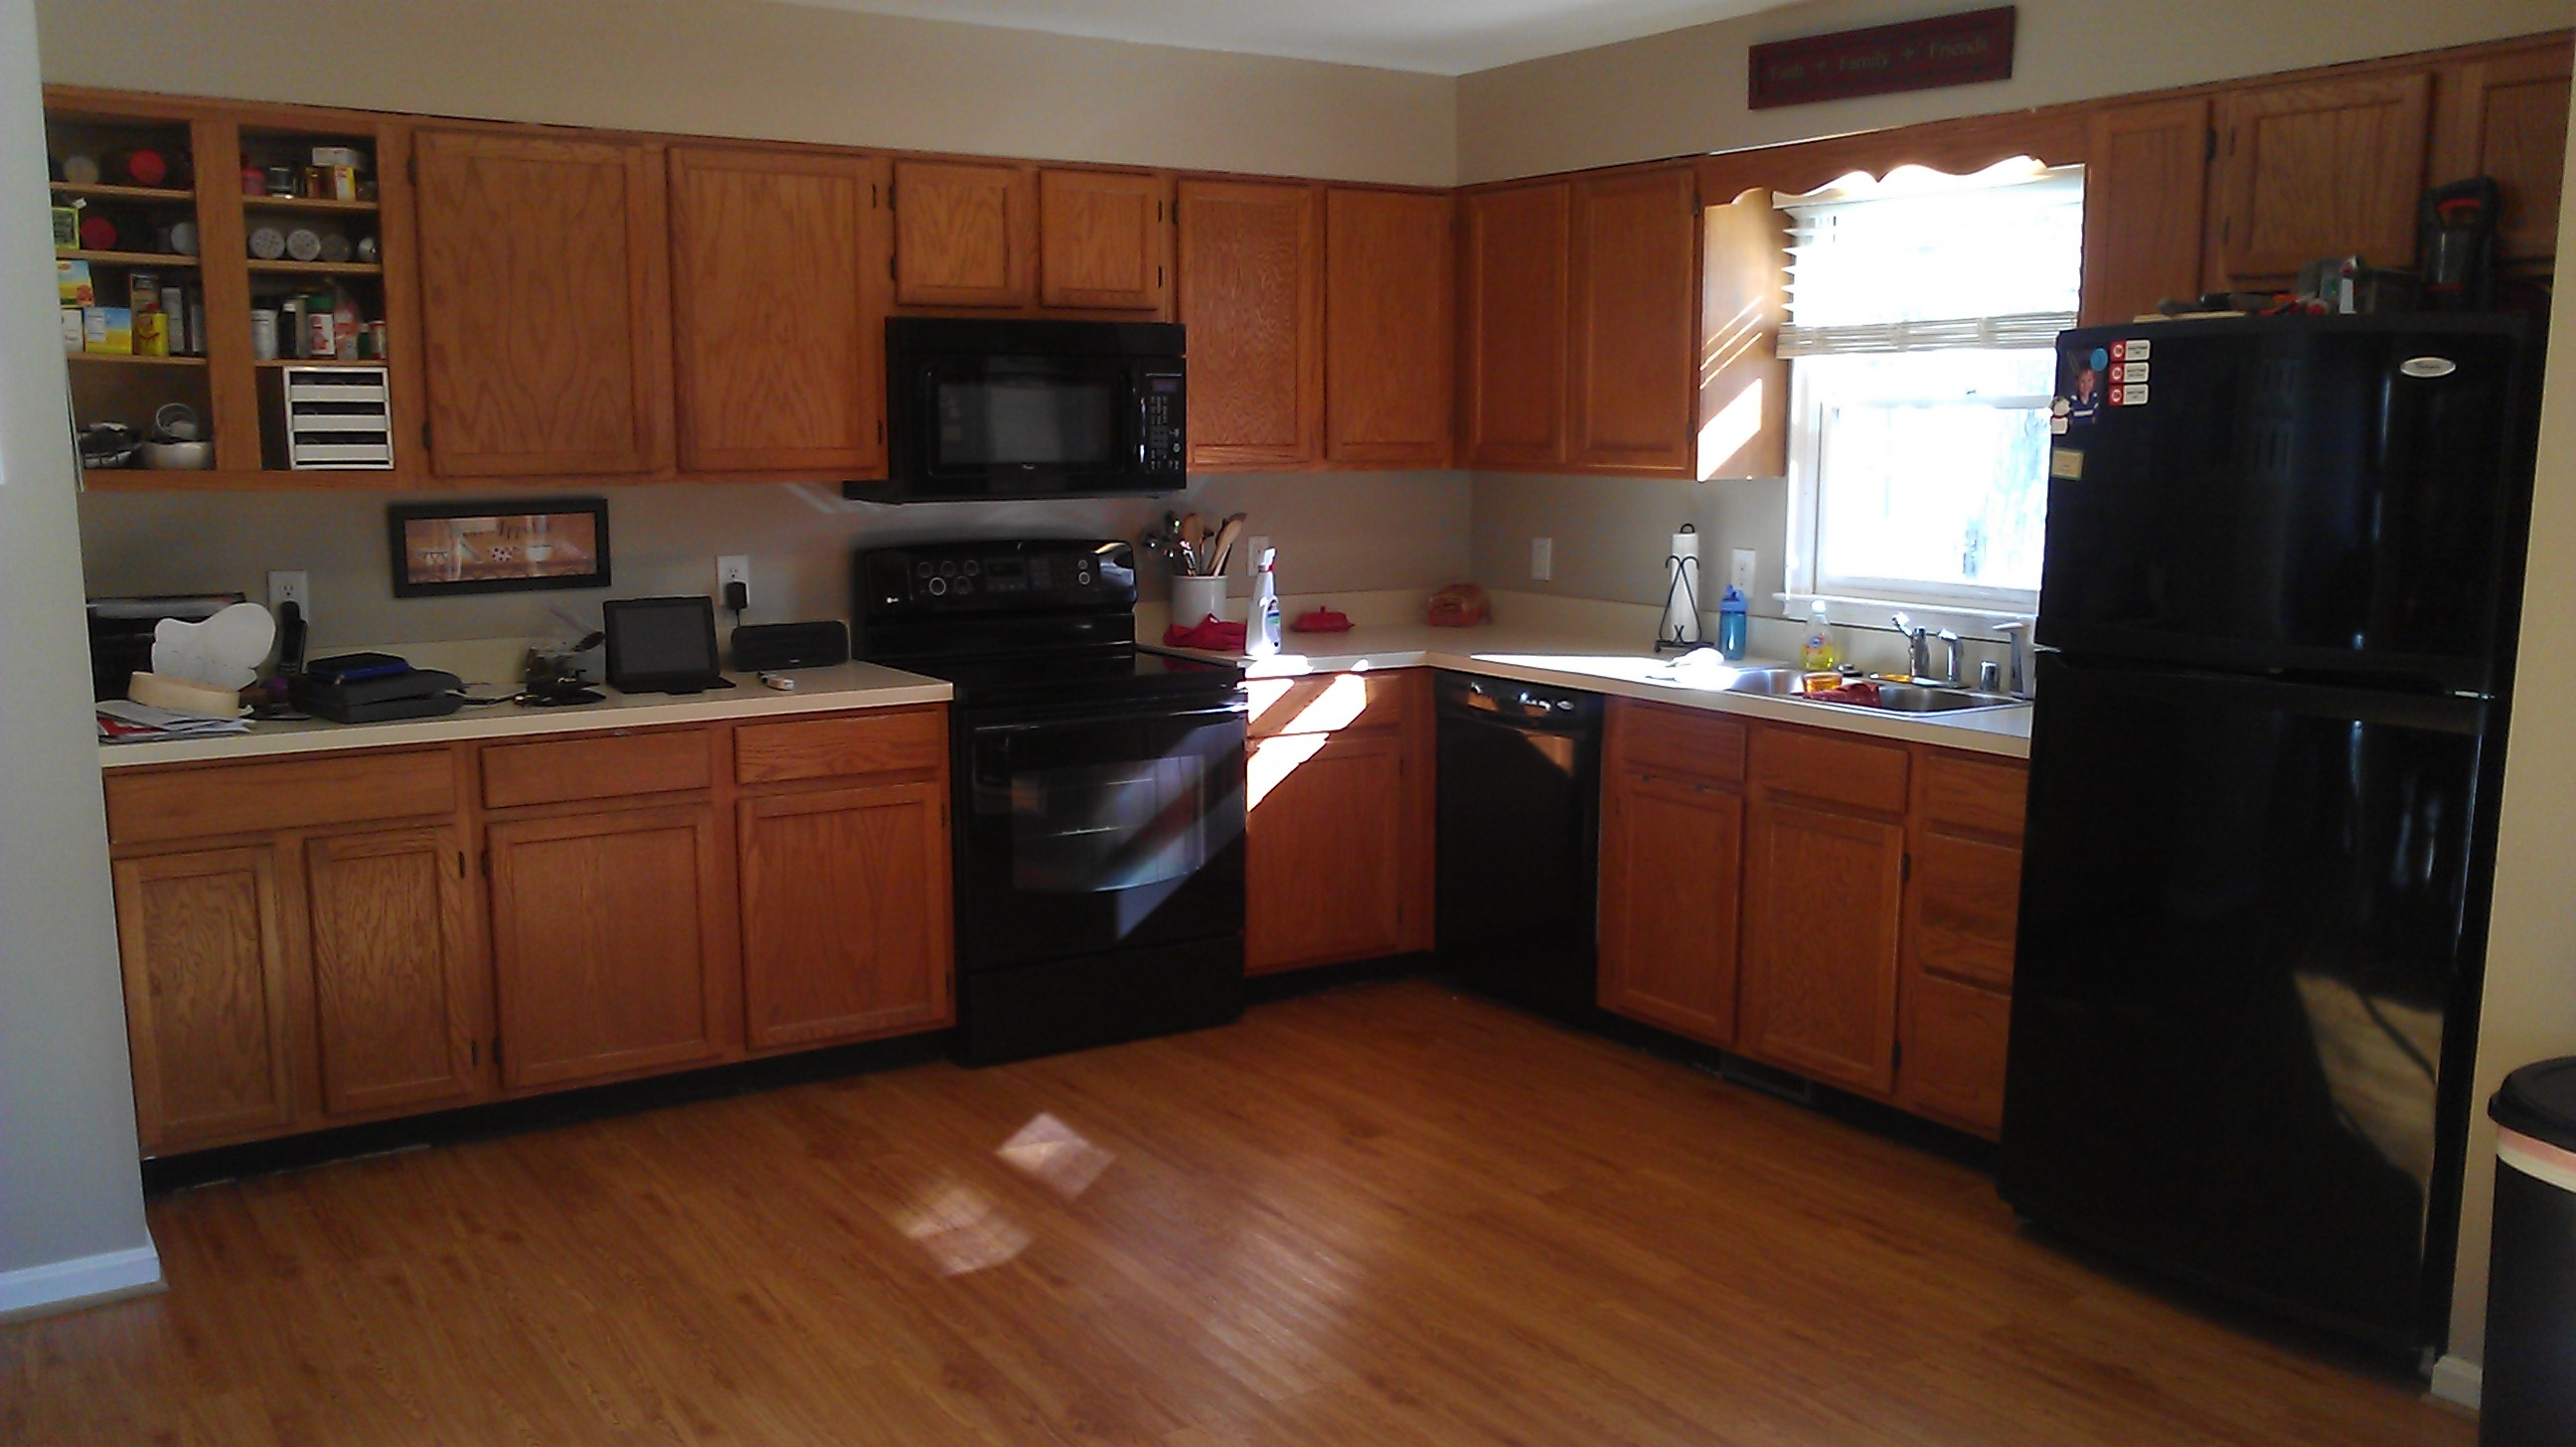 budget friendly kitchen remodel diy cheap kitchen remodel Image